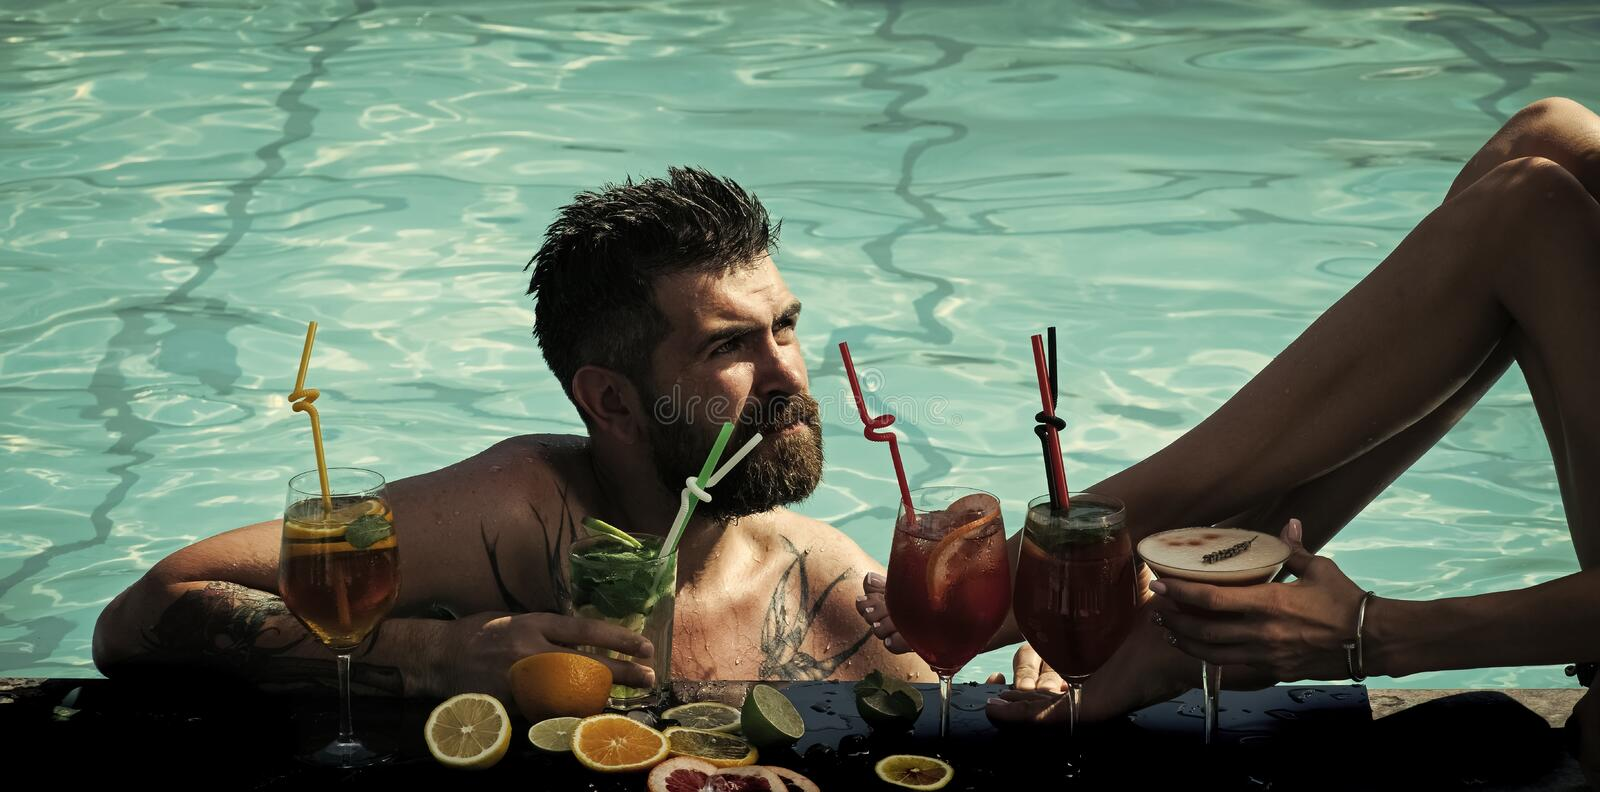 Party at the pool. Cocktail and bearded man in pool. royalty free stock image